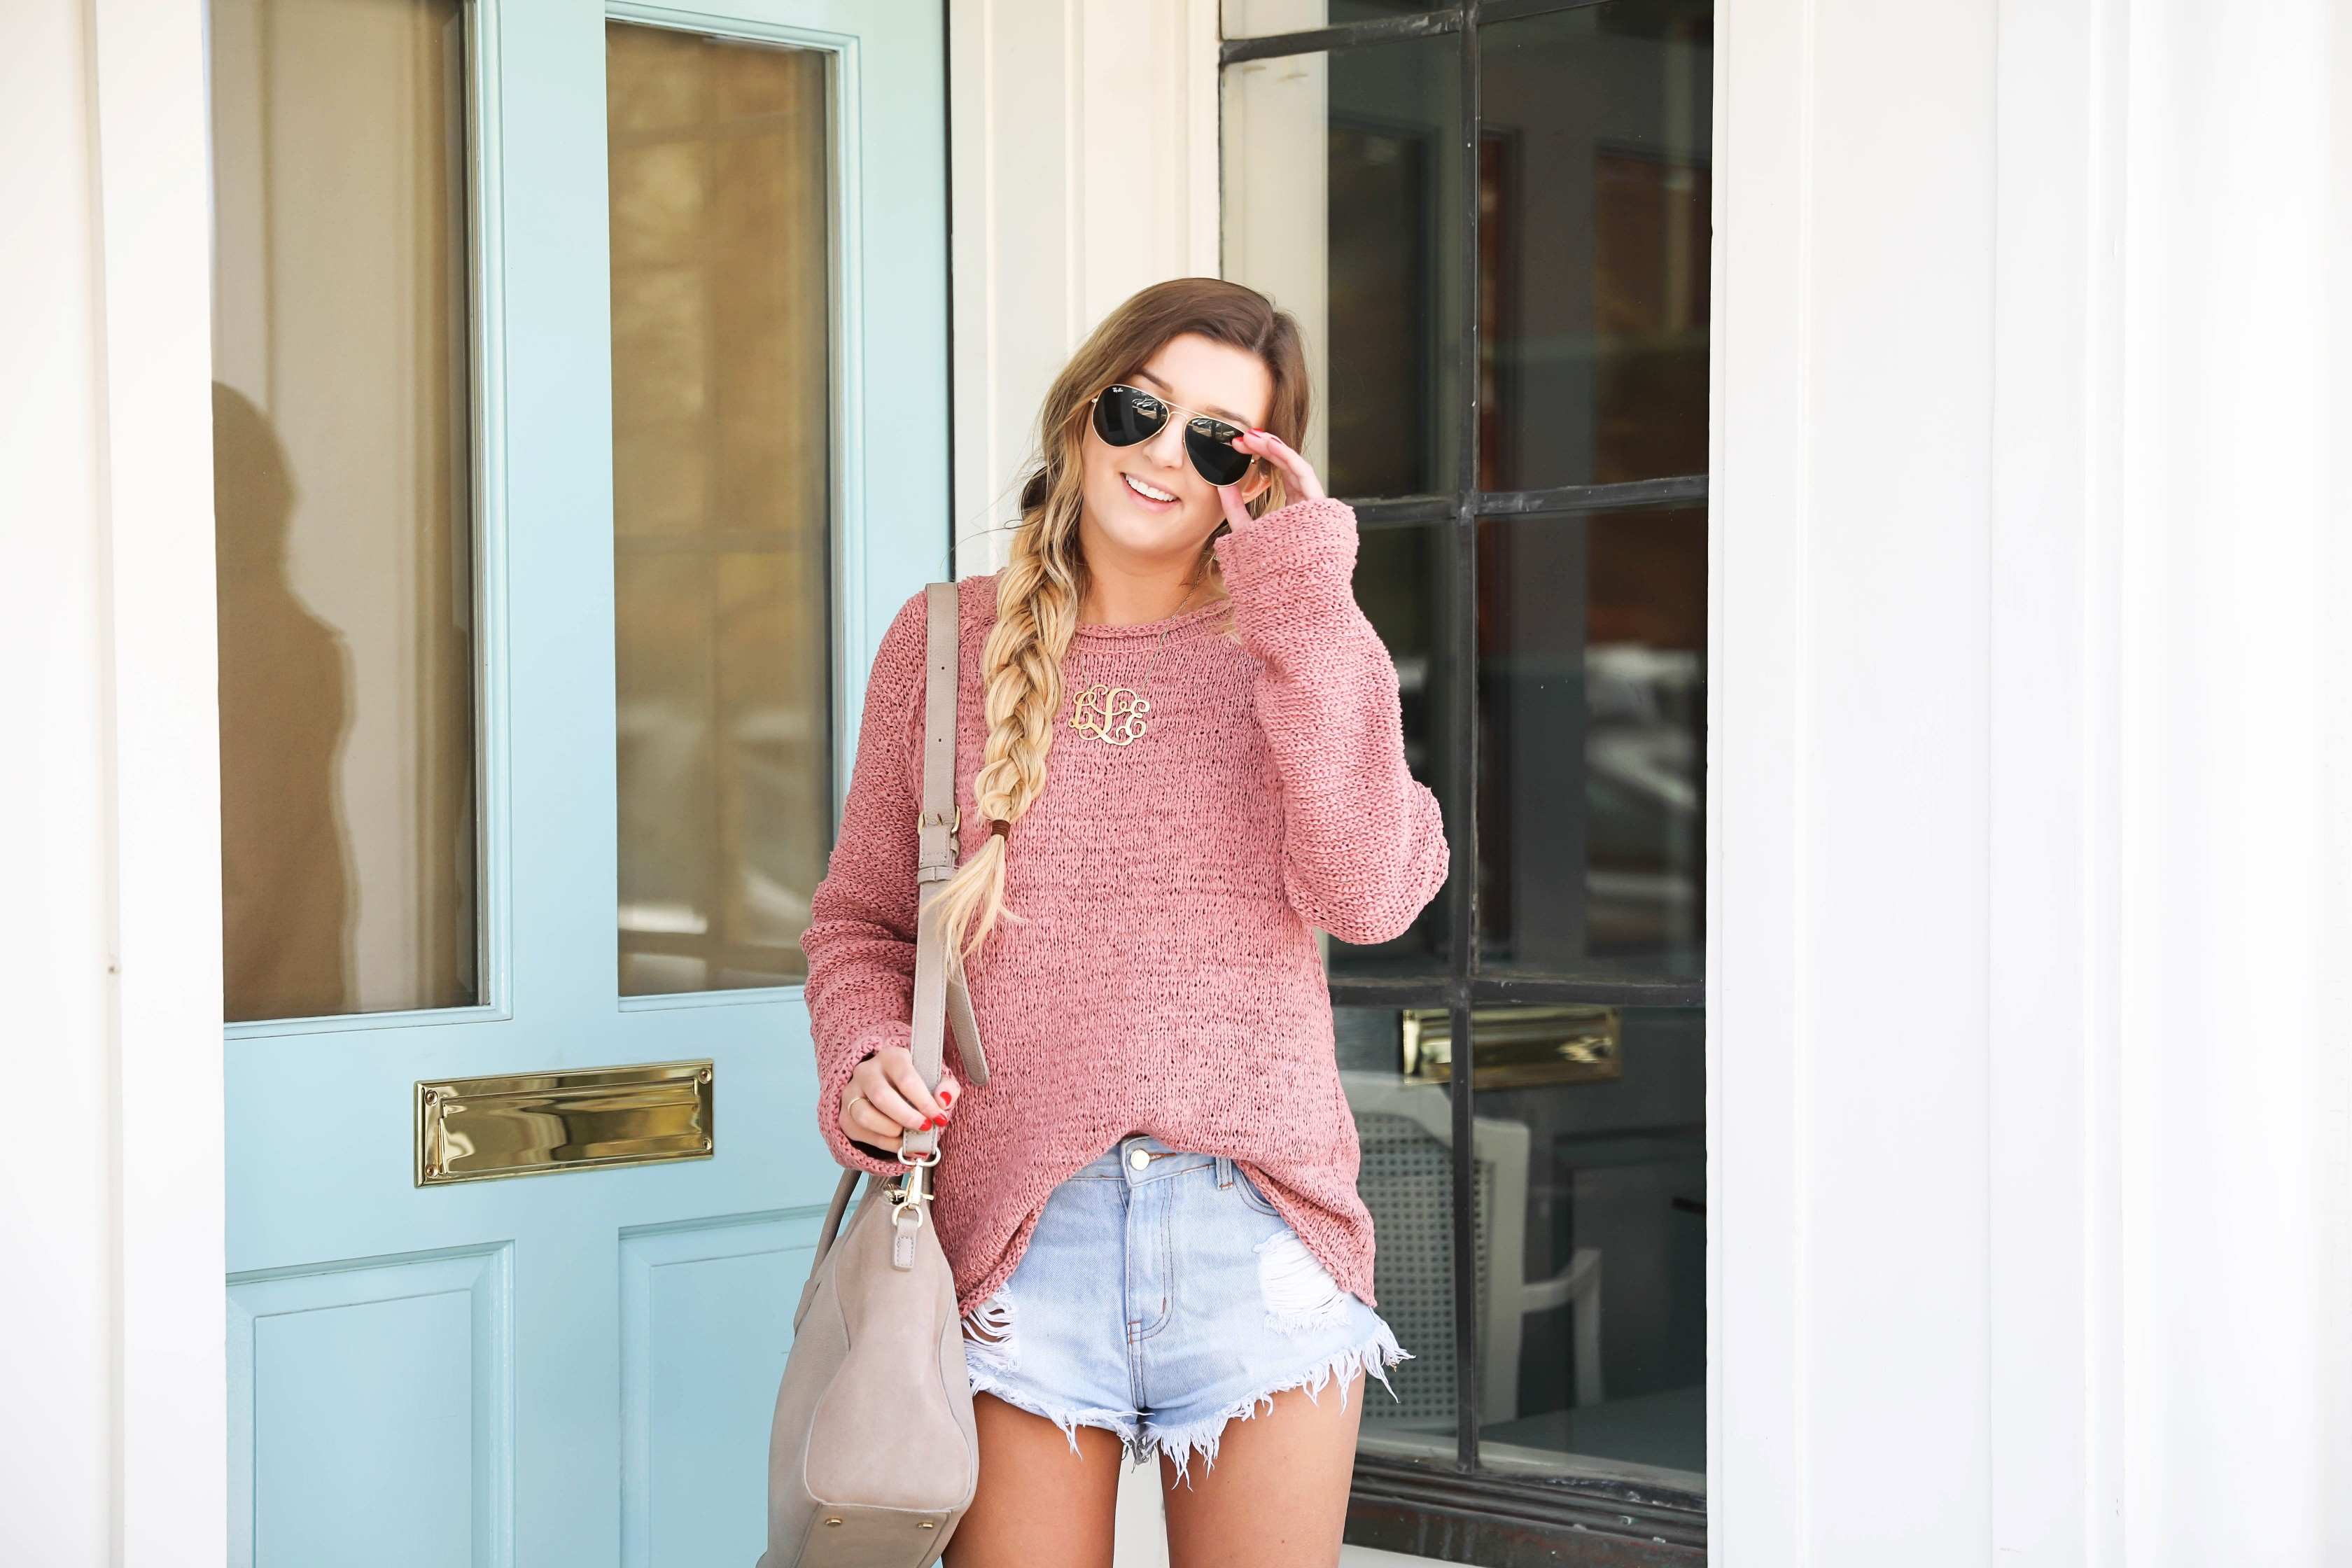 Coral open back sweater from a small boutique in Nashville! Paired with ripped denim shorts! Details on fashion blog daily dose of charm by lauren lindmark